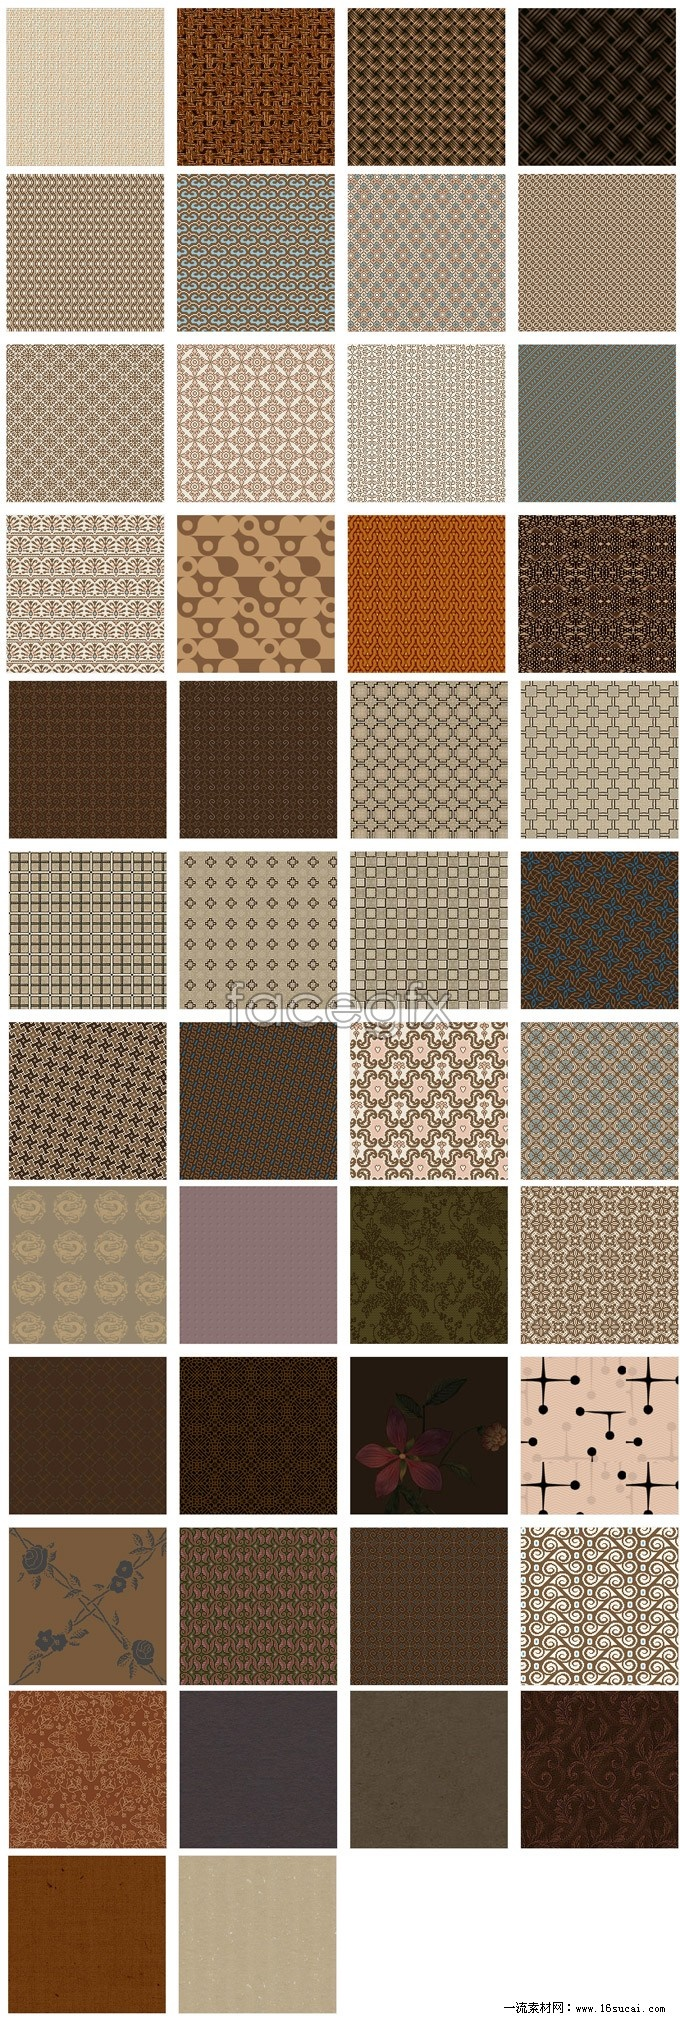 Brown pattern page background Pack